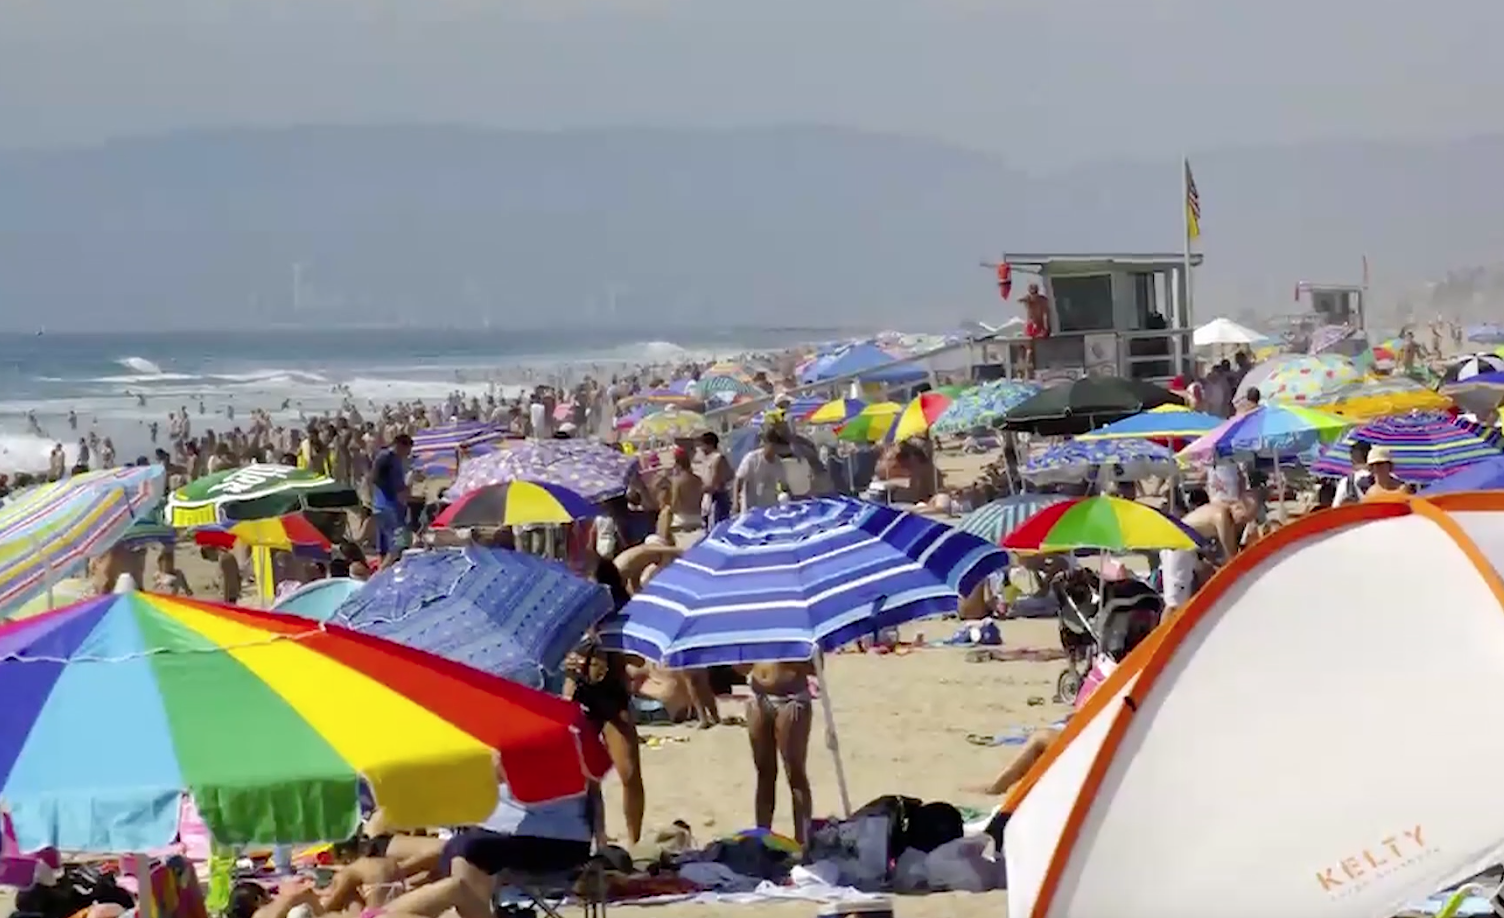 Council Could Require Permits For Large Groups Using Santa Monica Beaches